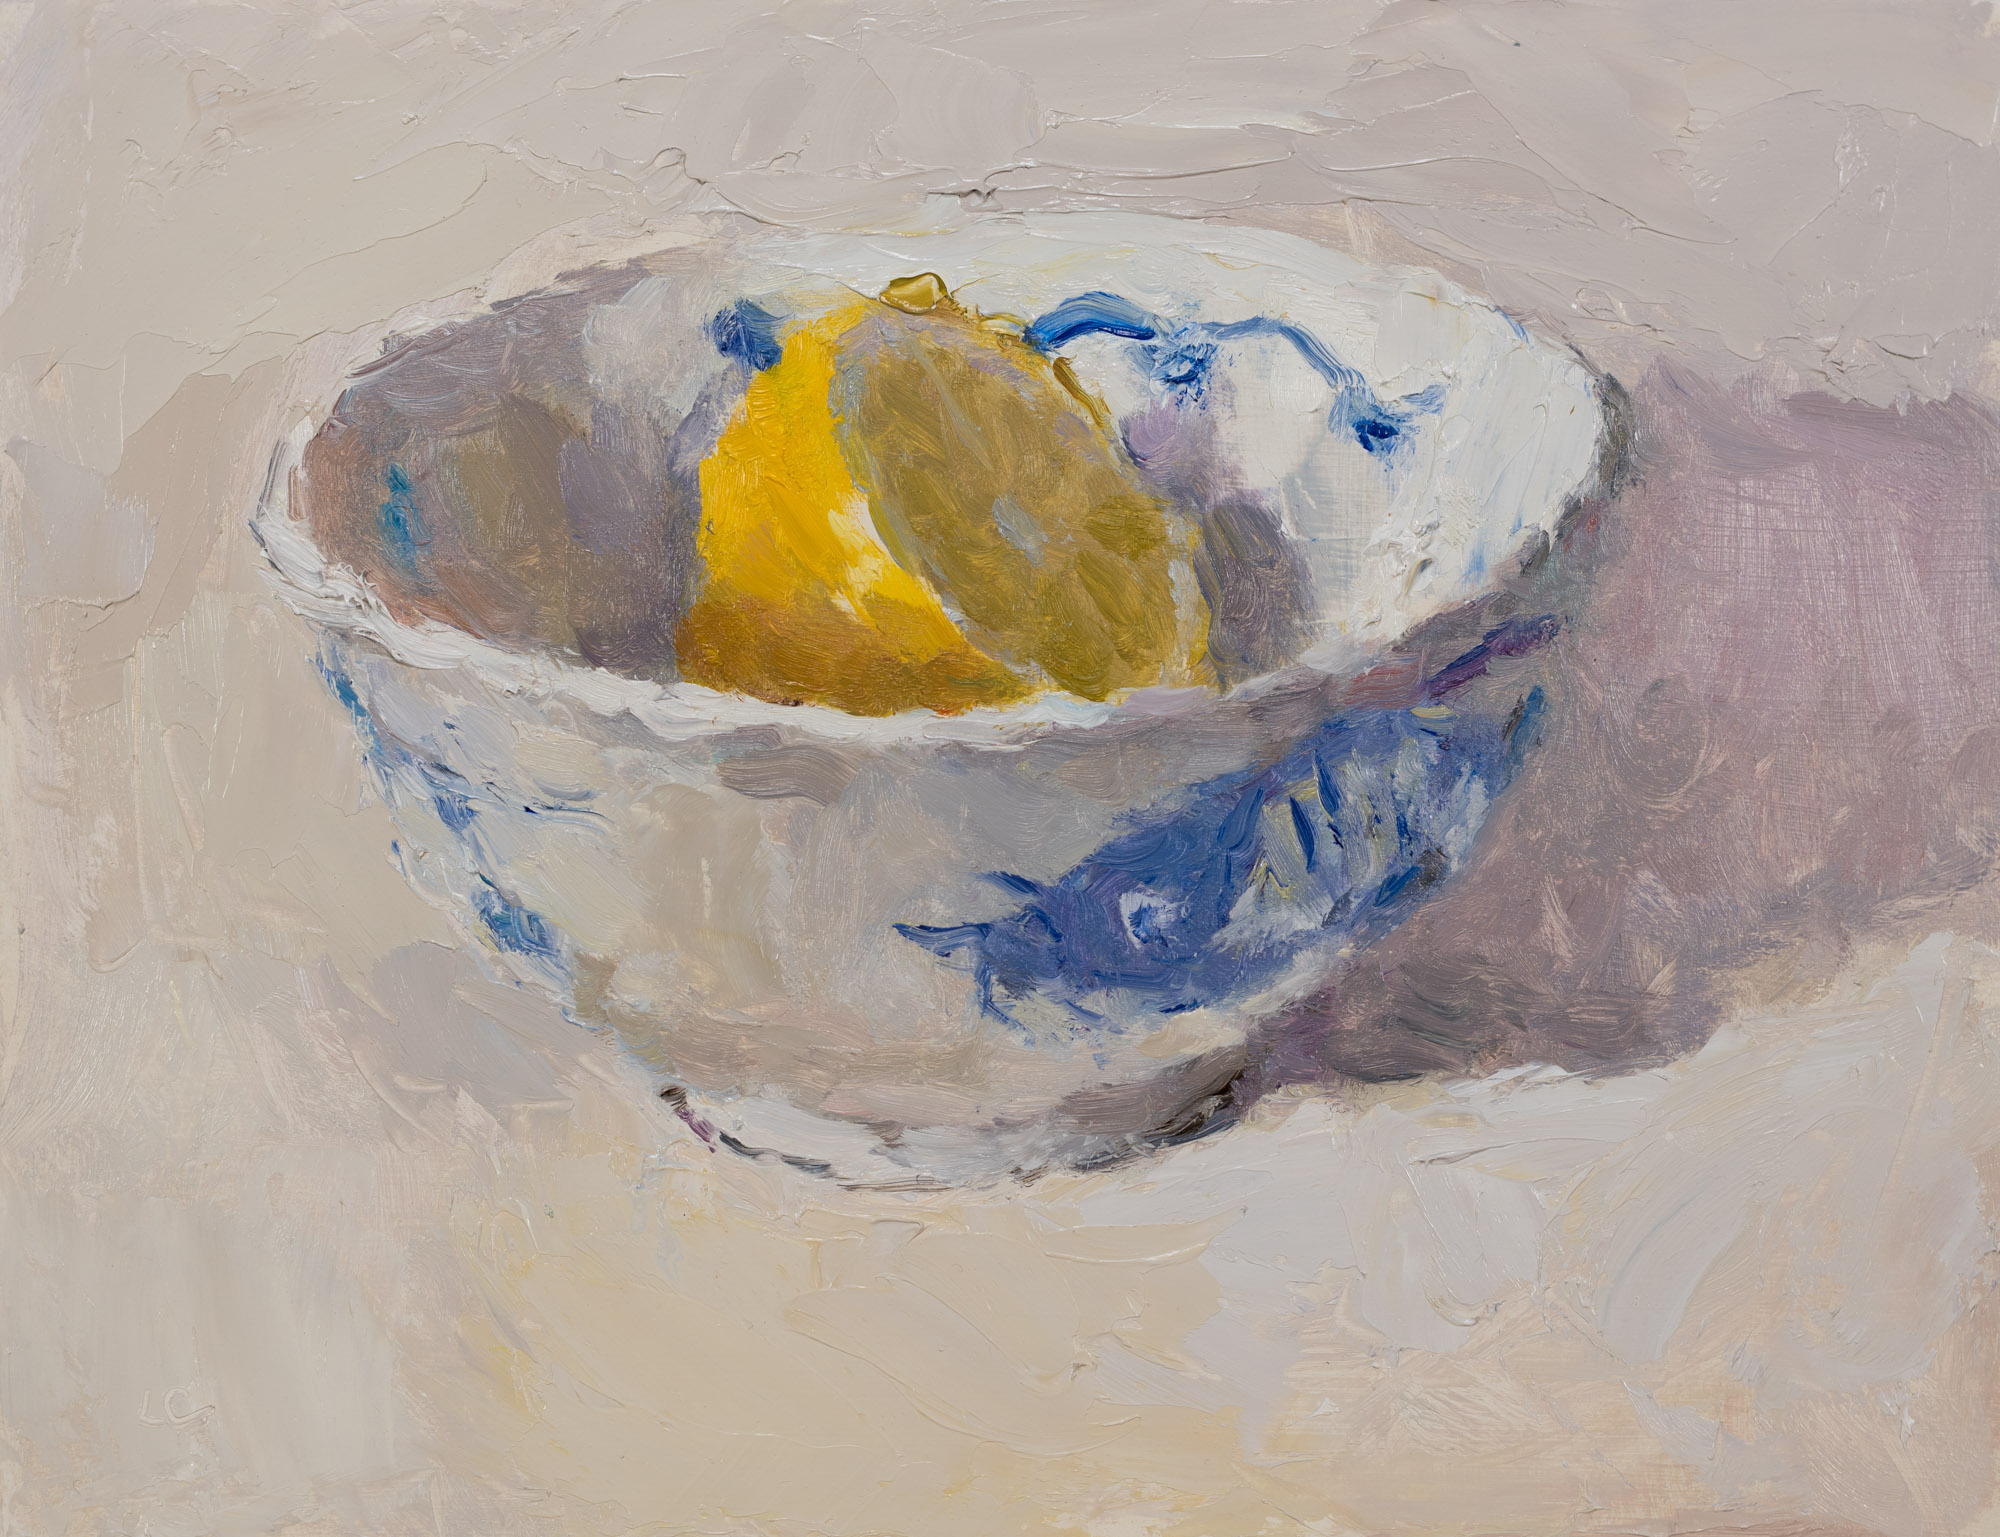 Lemon Half in a Chinese Bowl 4, Oil on Board, 18.6cm x 24.5cm (2019-45)  SOLD